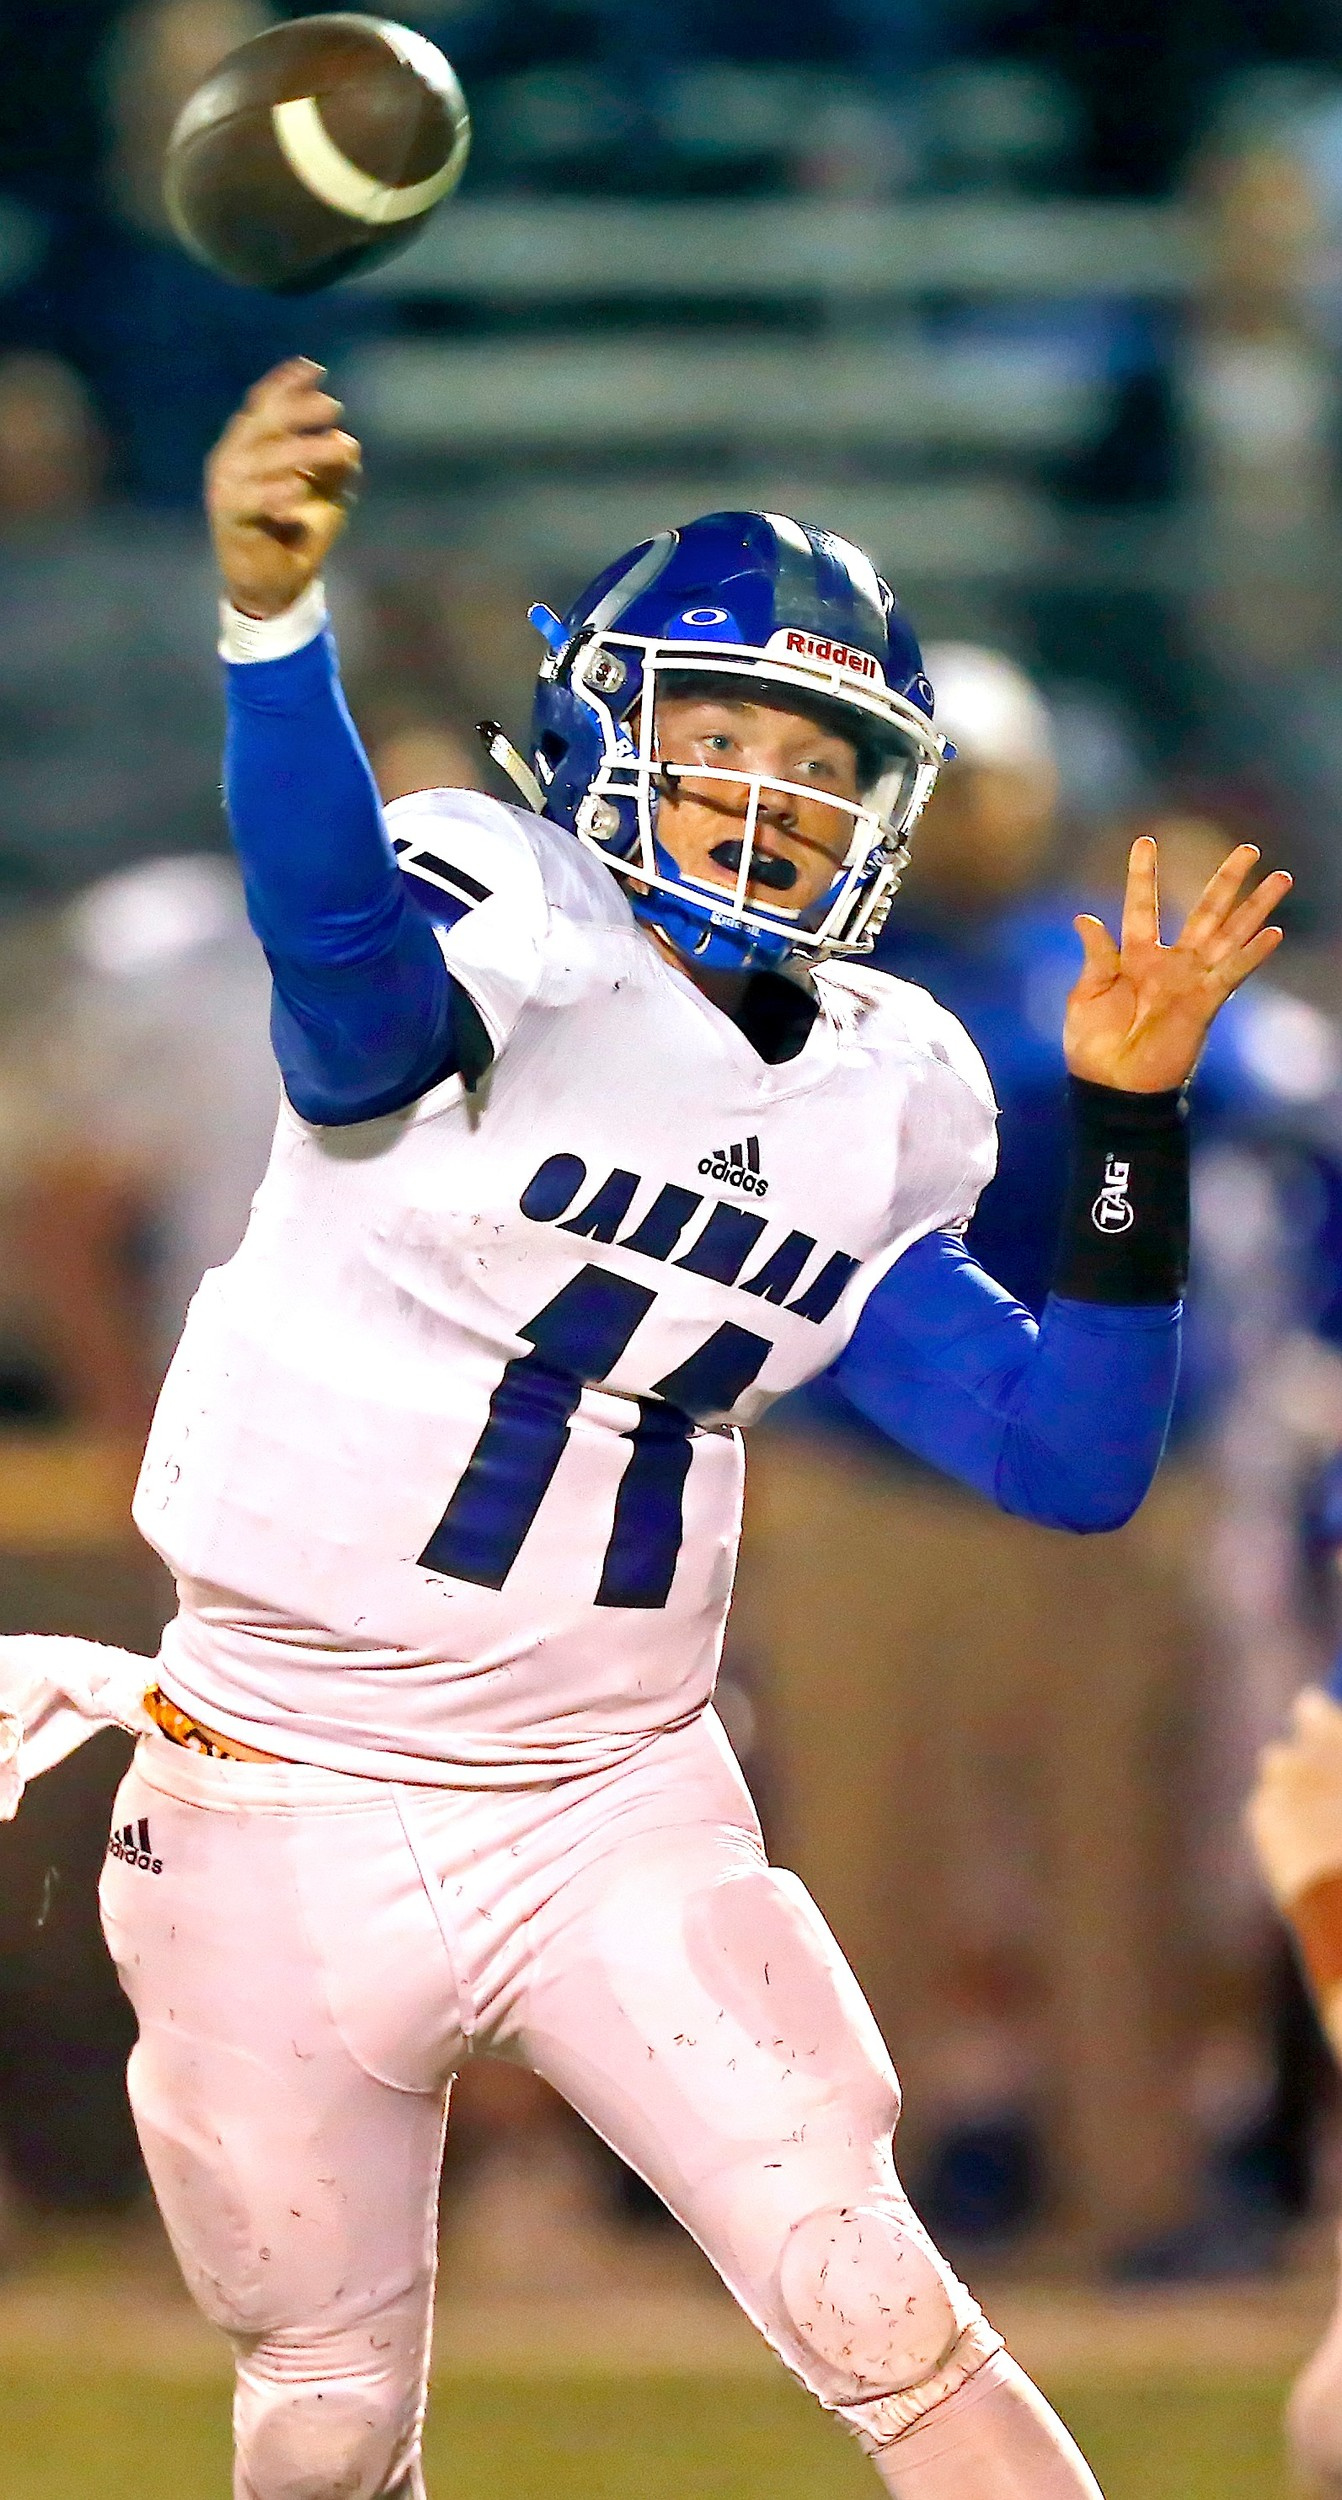 Oakman quarterback Jon Avery threw three touchdown passes against Daleville in Thursday night's 31-12 win over the Warhawks. With the win, Oakman earned a spot in the second round of the playoffs for the seventh straight season.